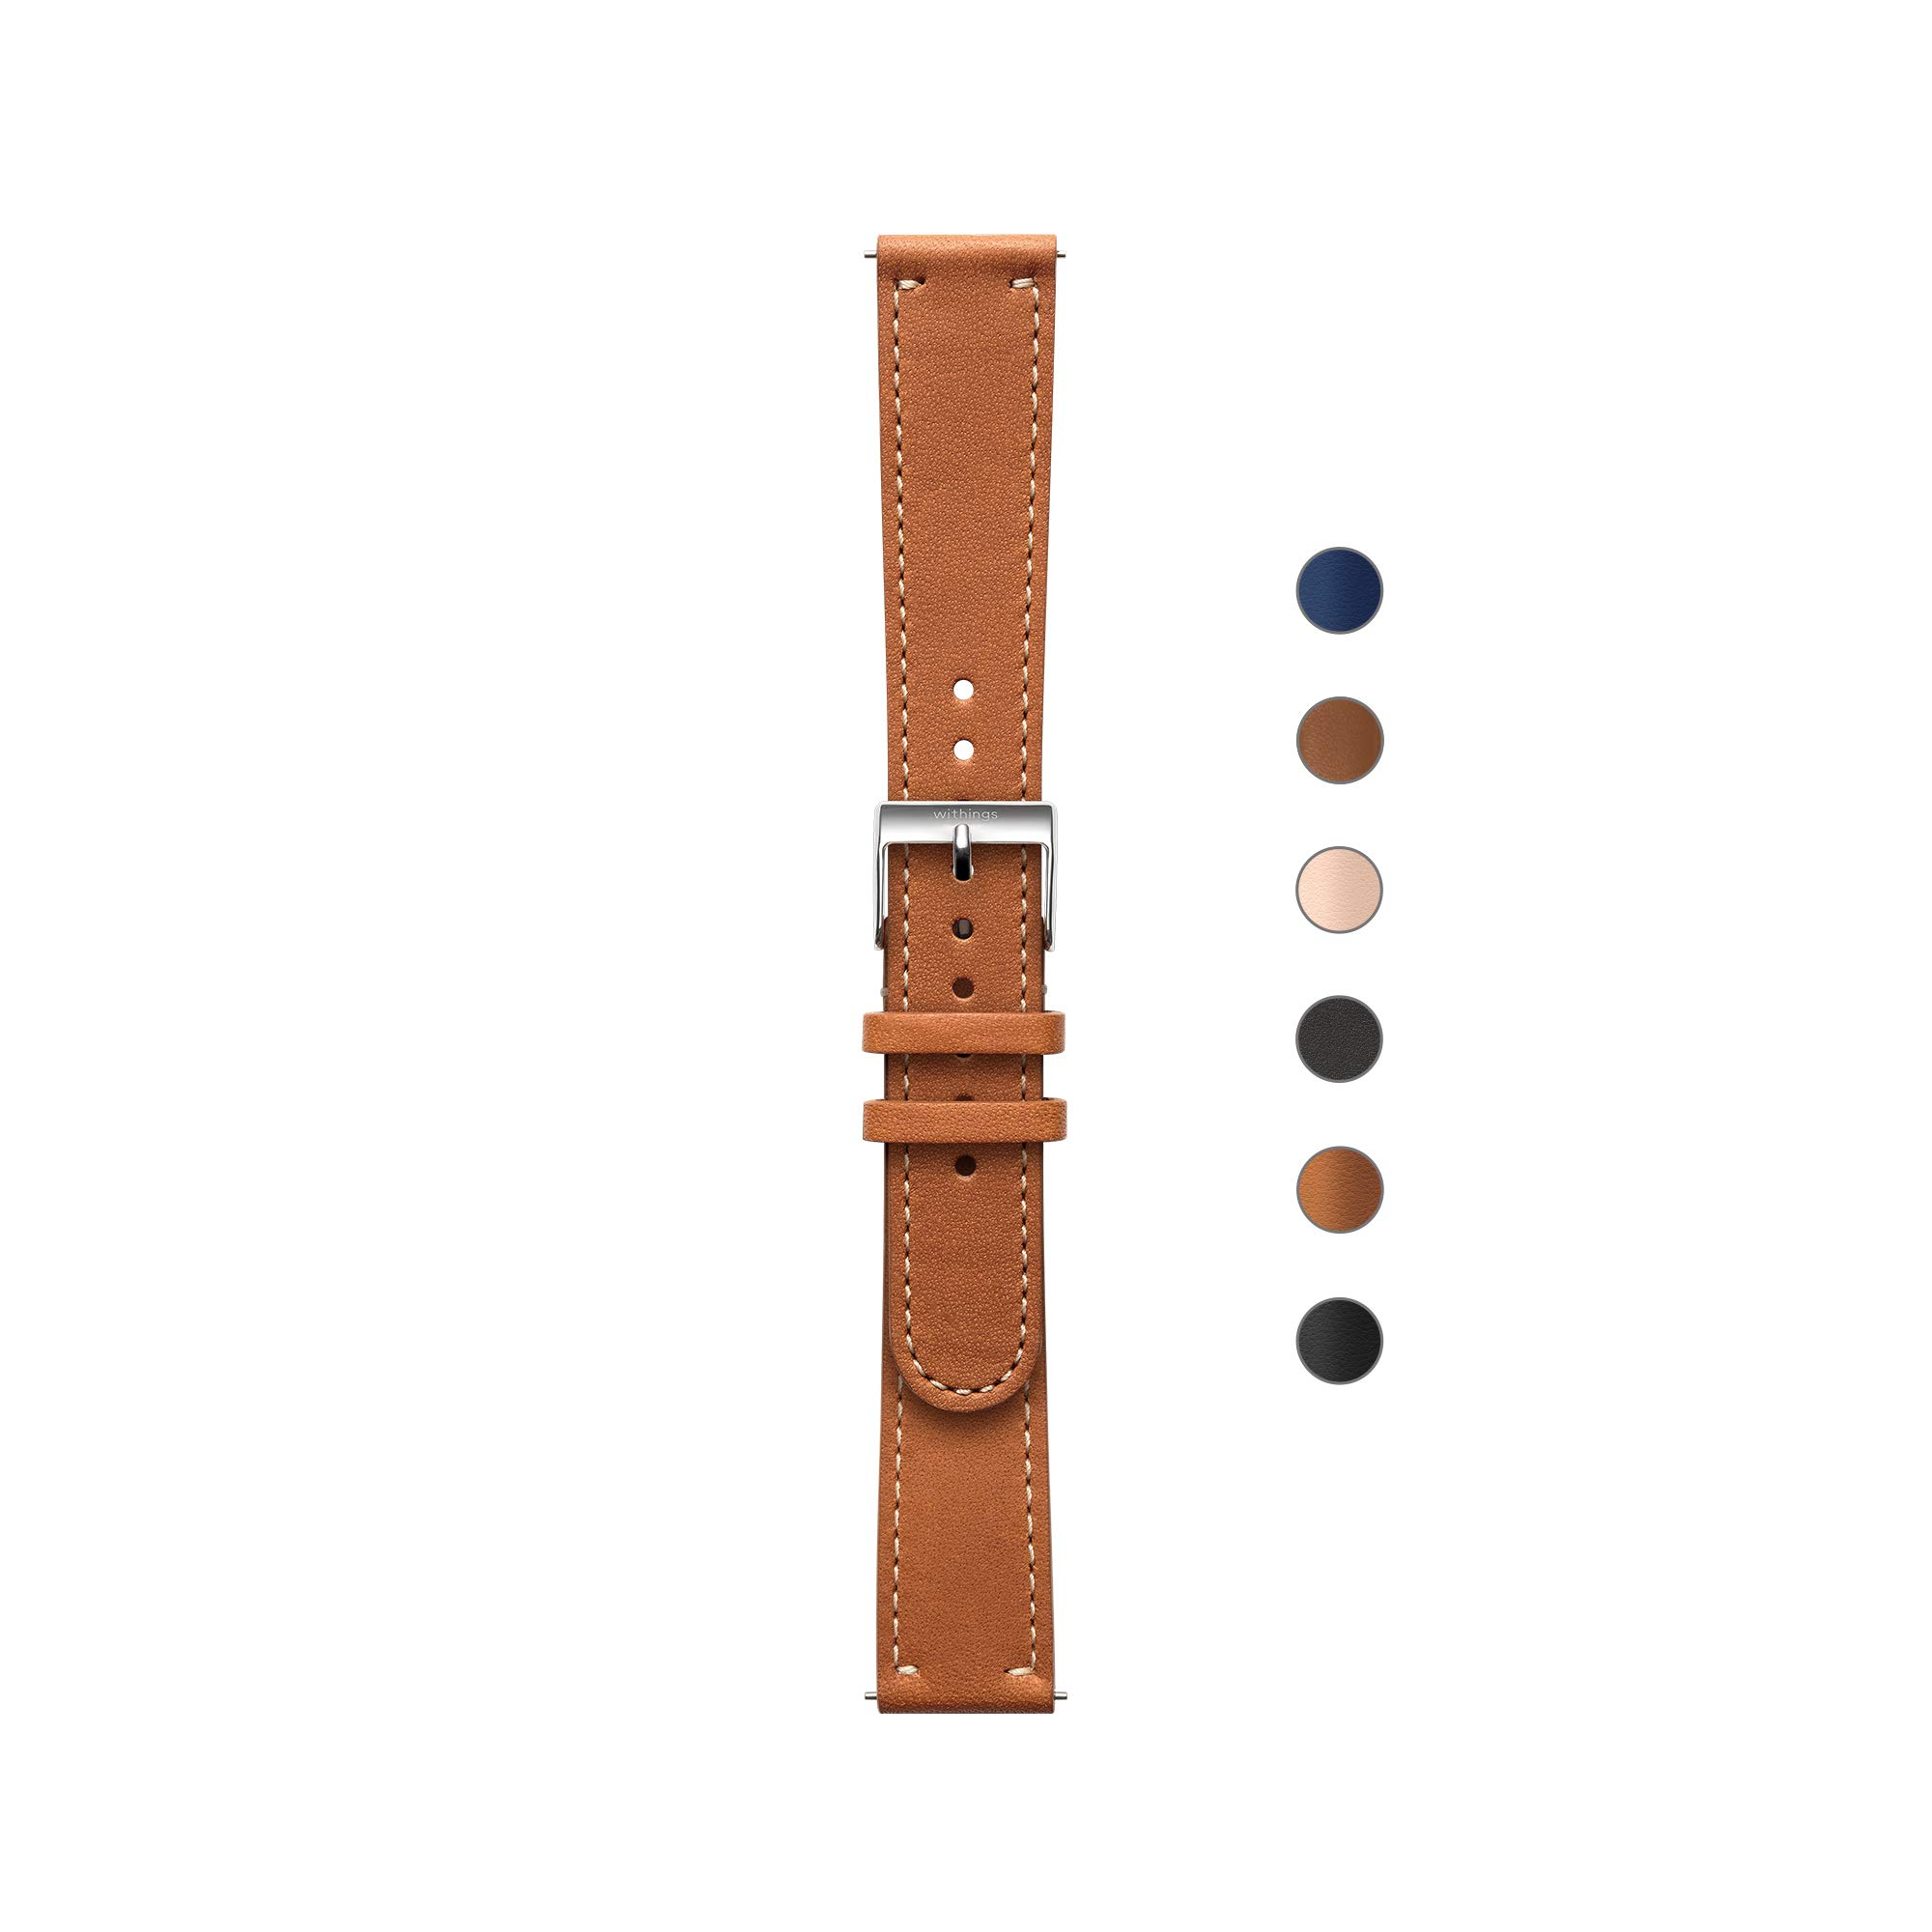 Withings/Nokia - Wristbands for Steel HR